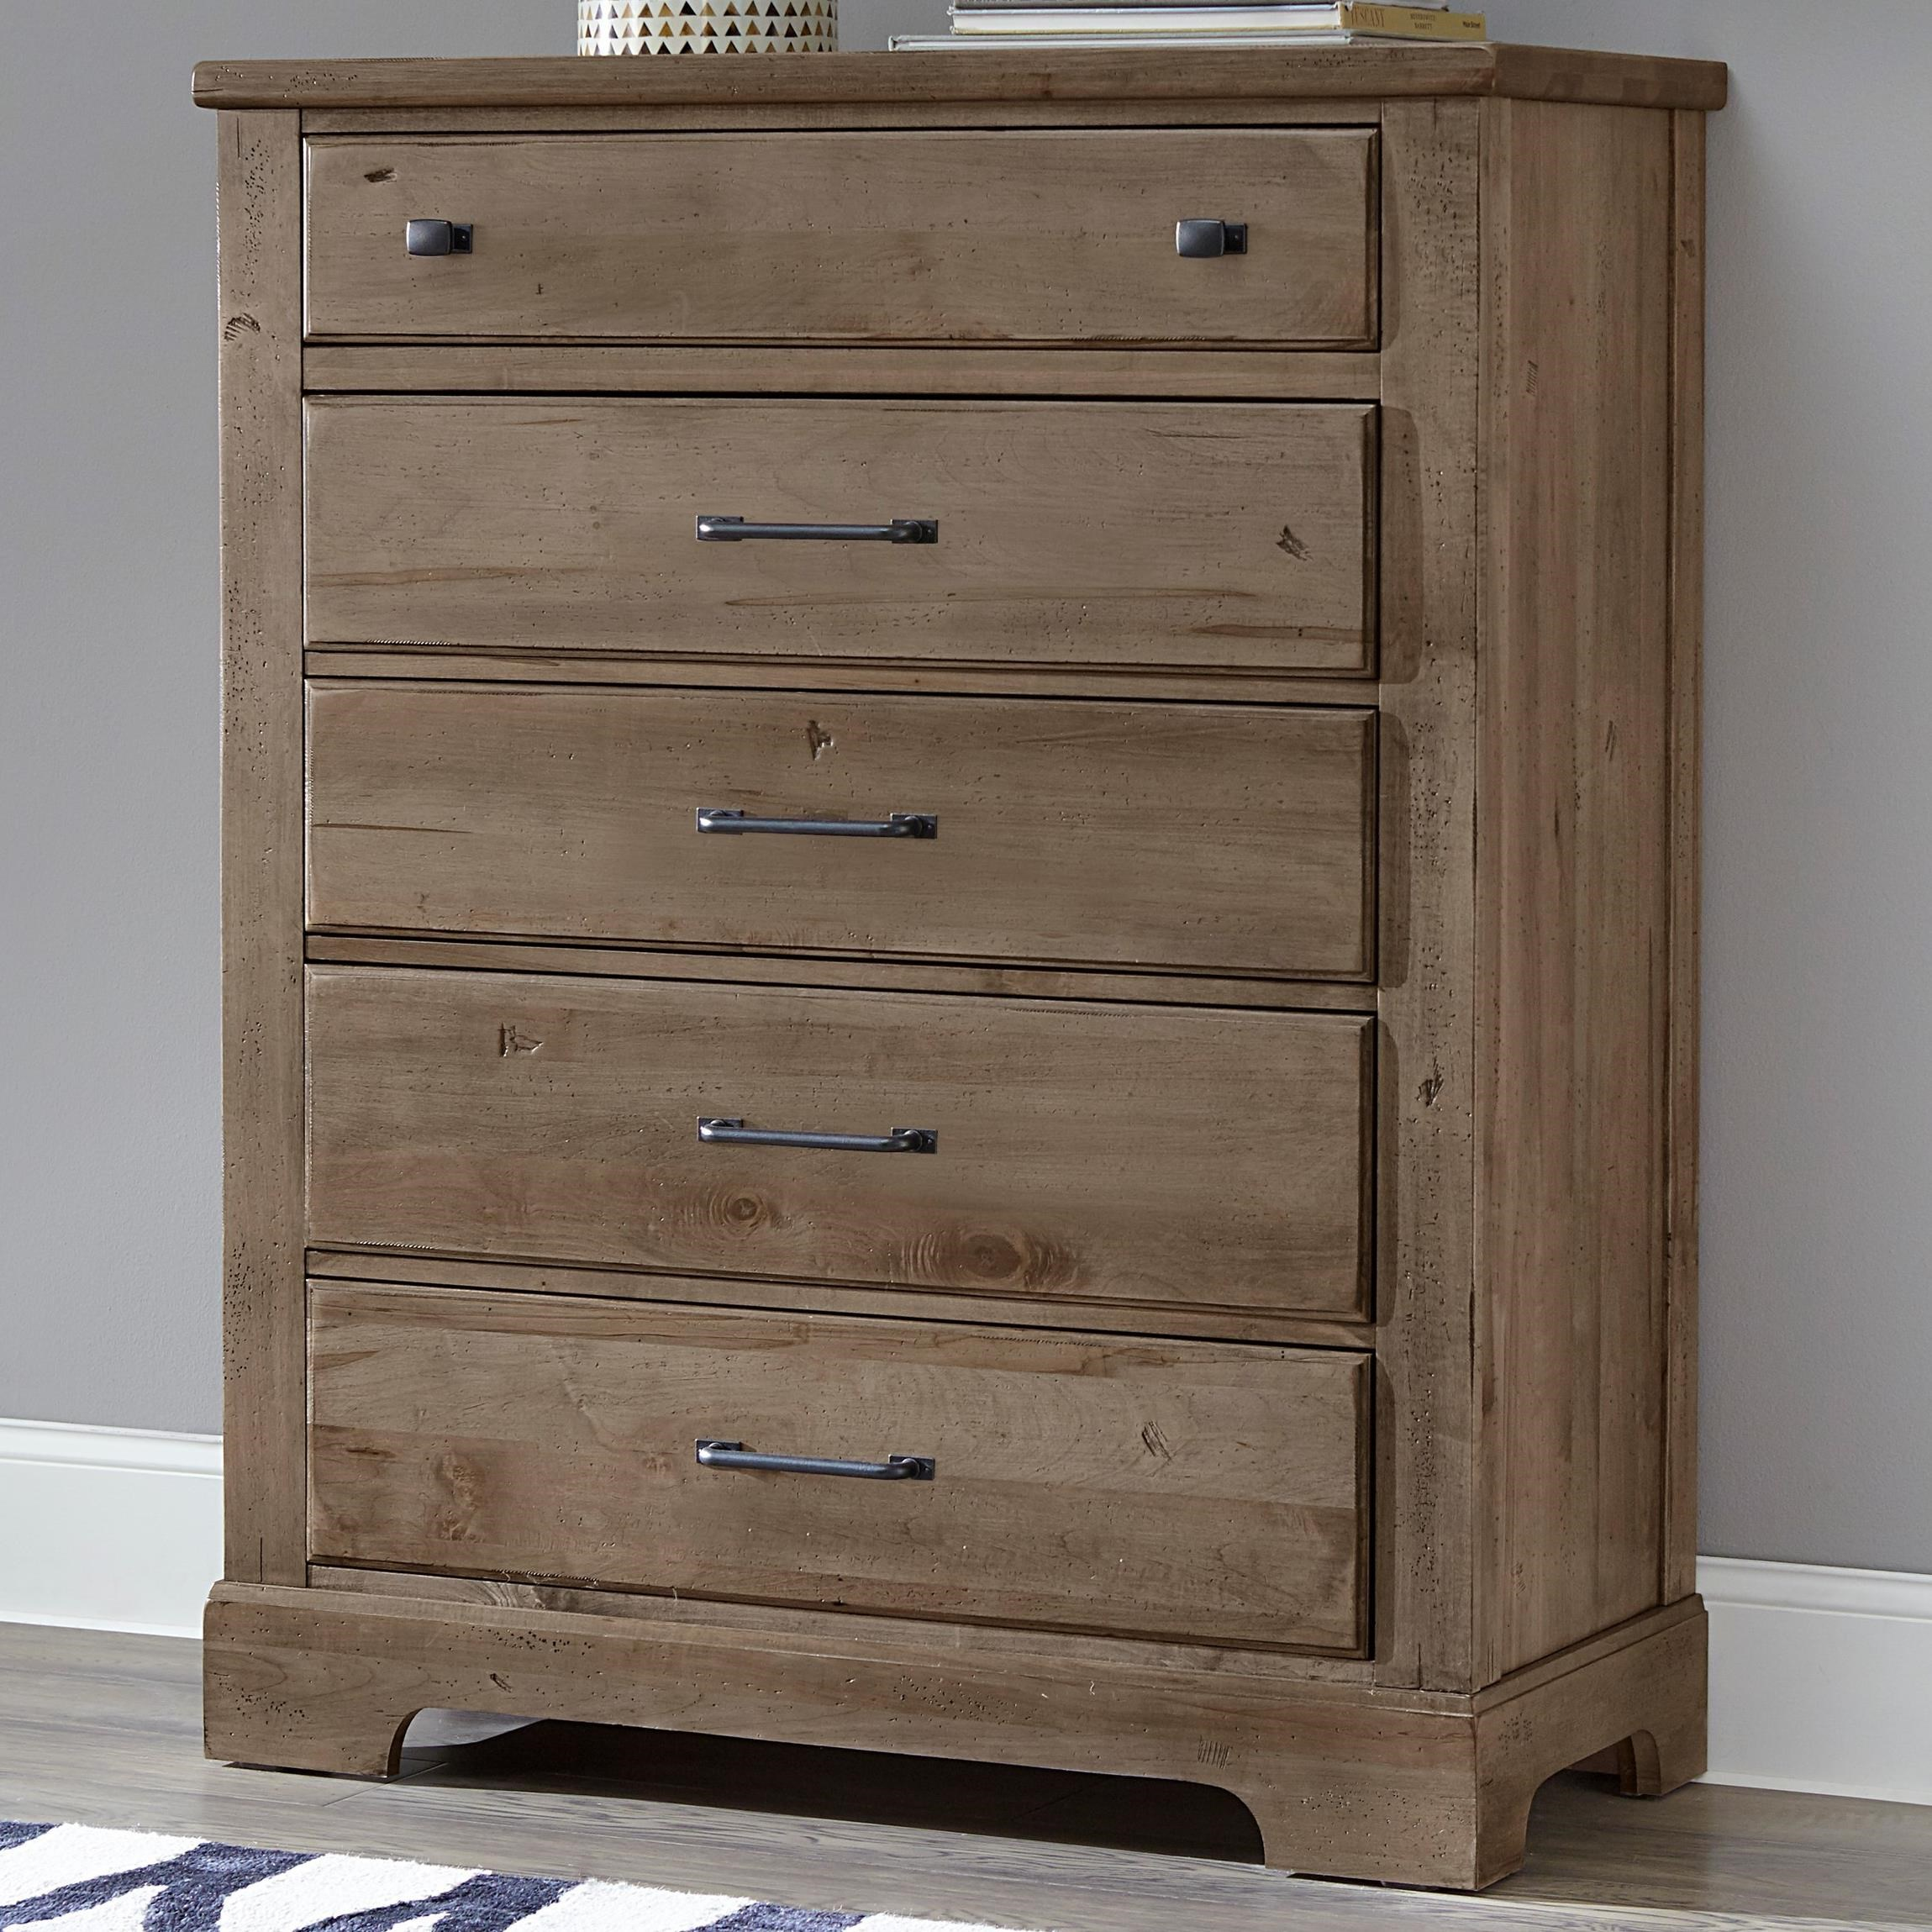 Coolest Bedroom Furniture: Artisan & Post Cool Rustic 172-115 Solid Wood 5 Drawer